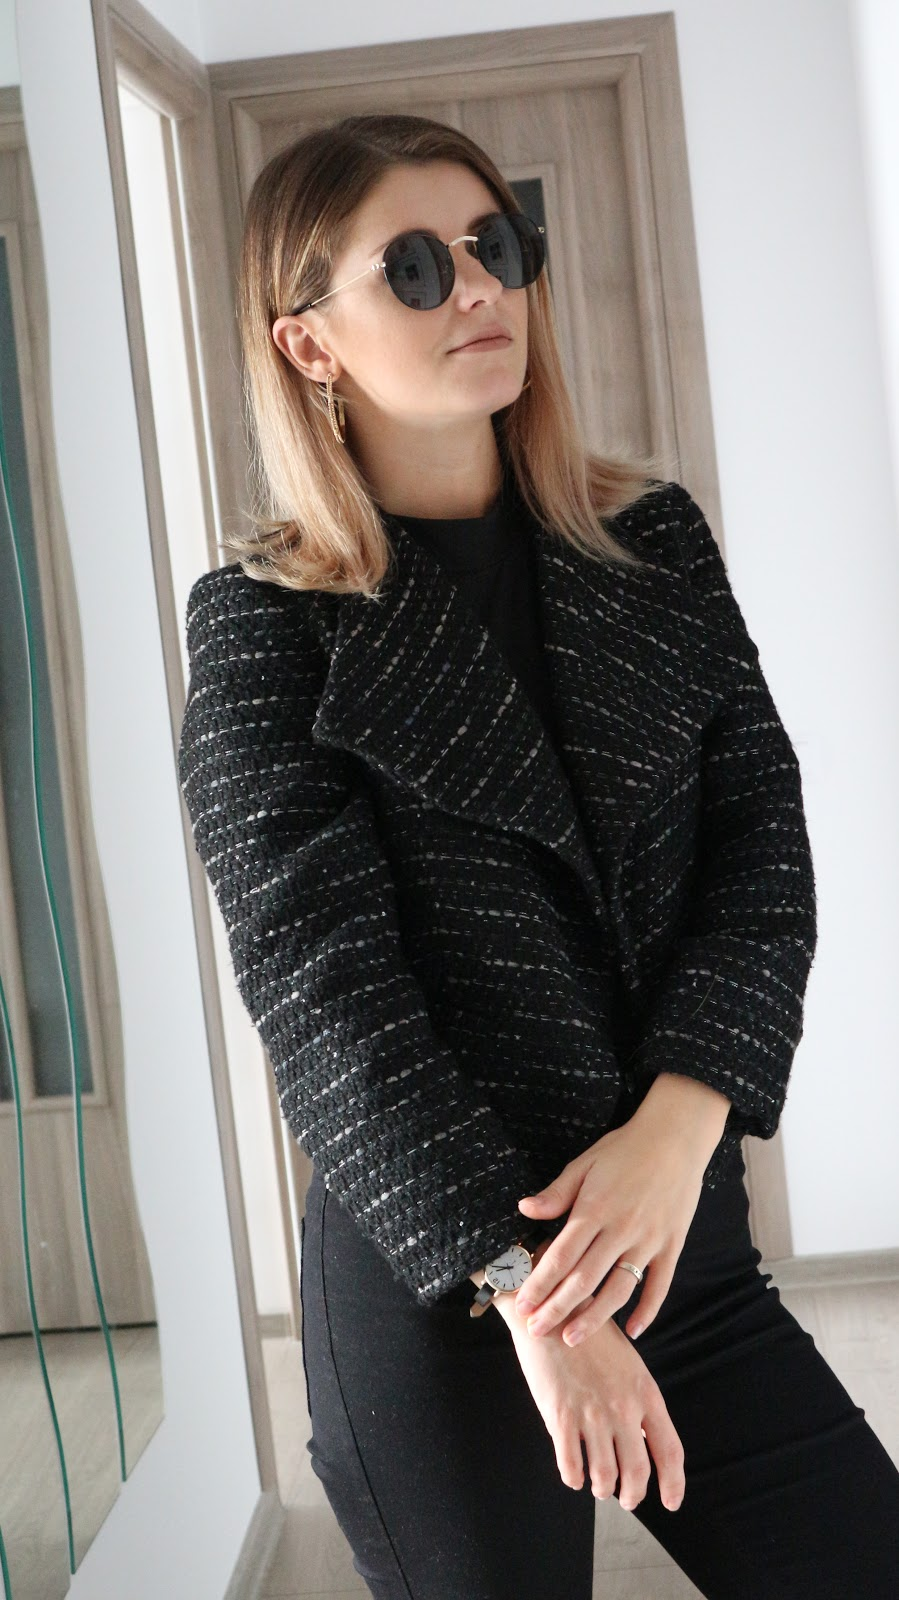 round black sunglasses and black tweed jacket outfit